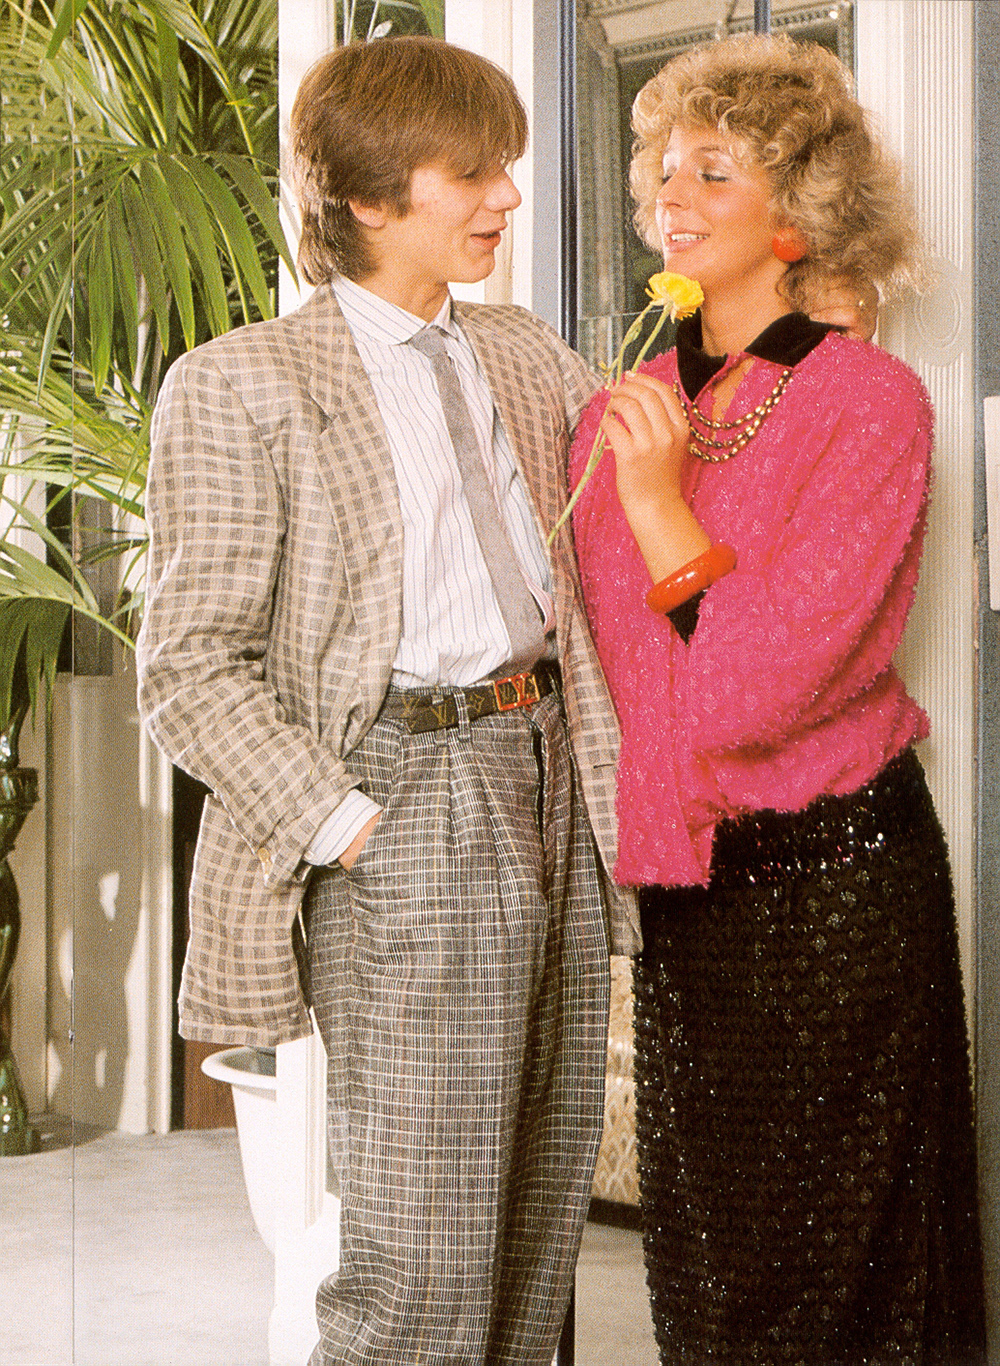 Porn Fashions: Obscenely Tasteless Apparel from 1980s